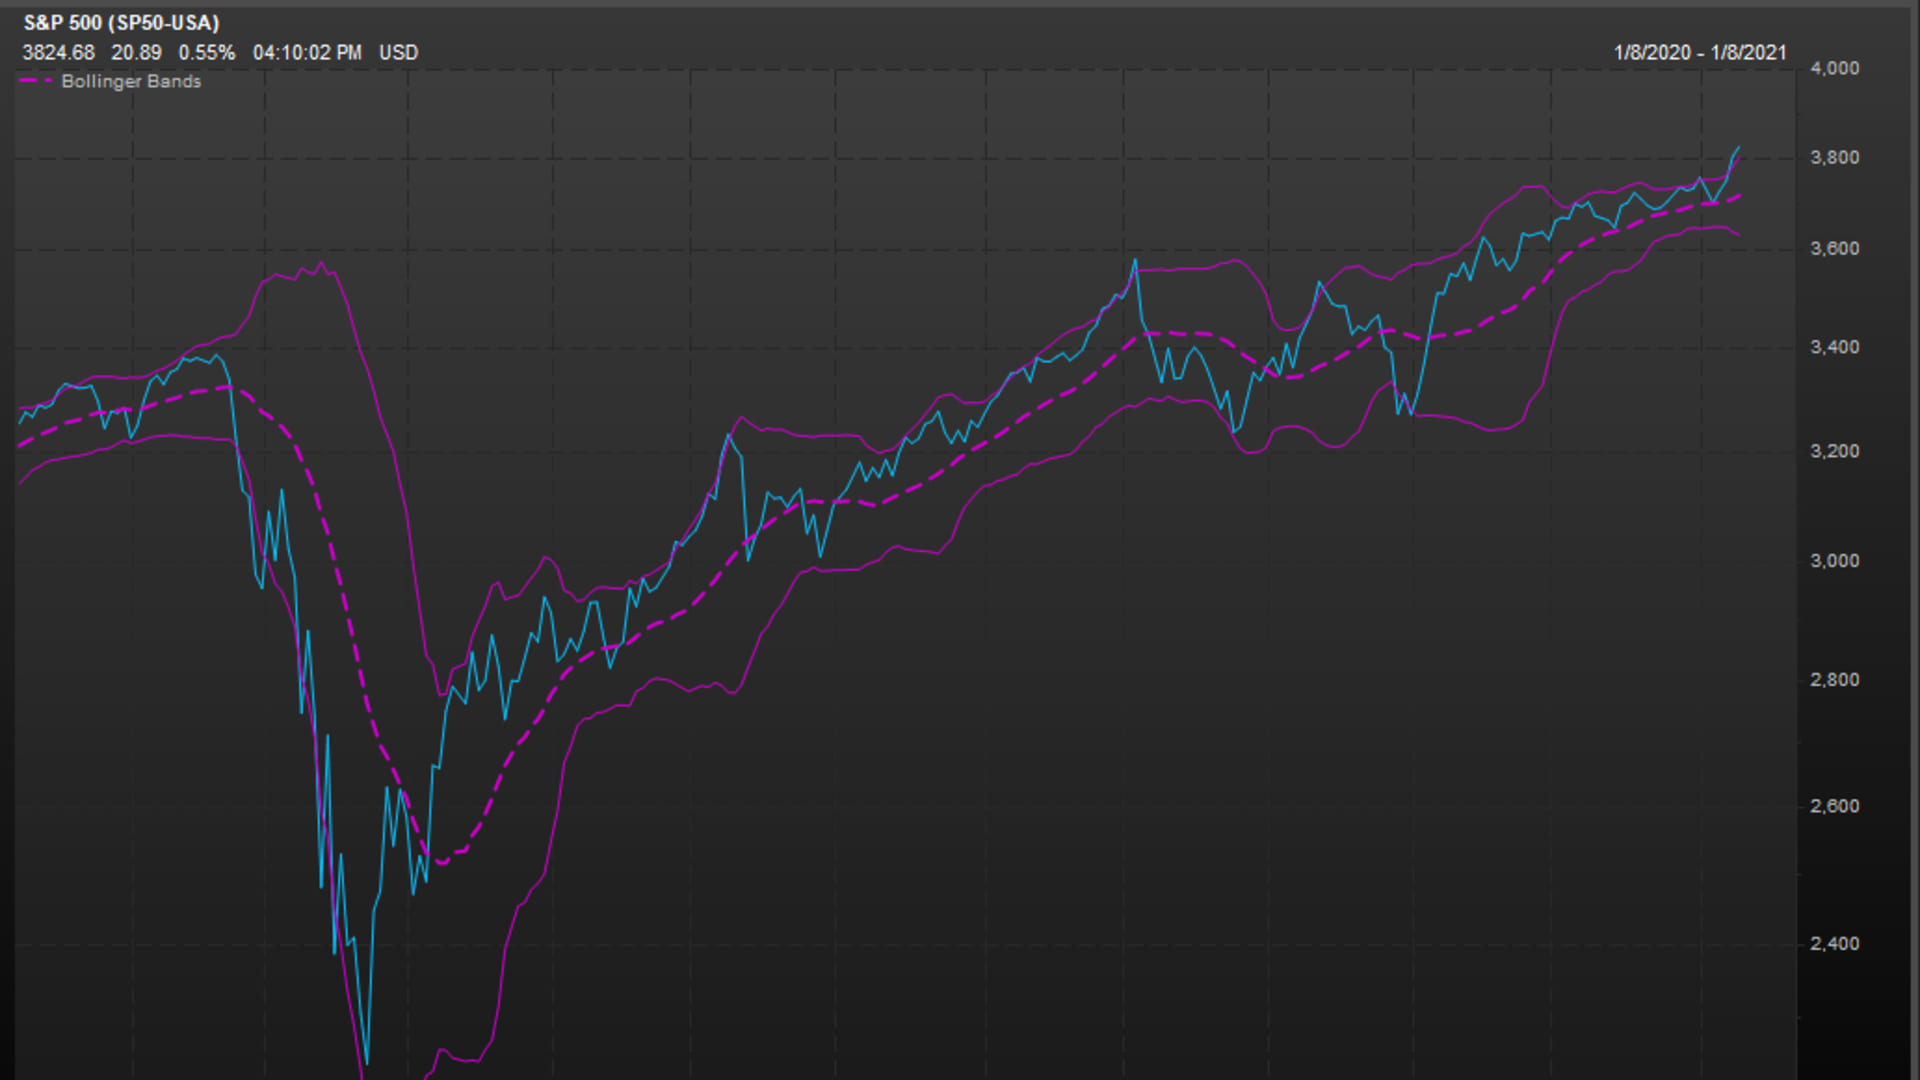 S&P 500 with Bollinger Bands